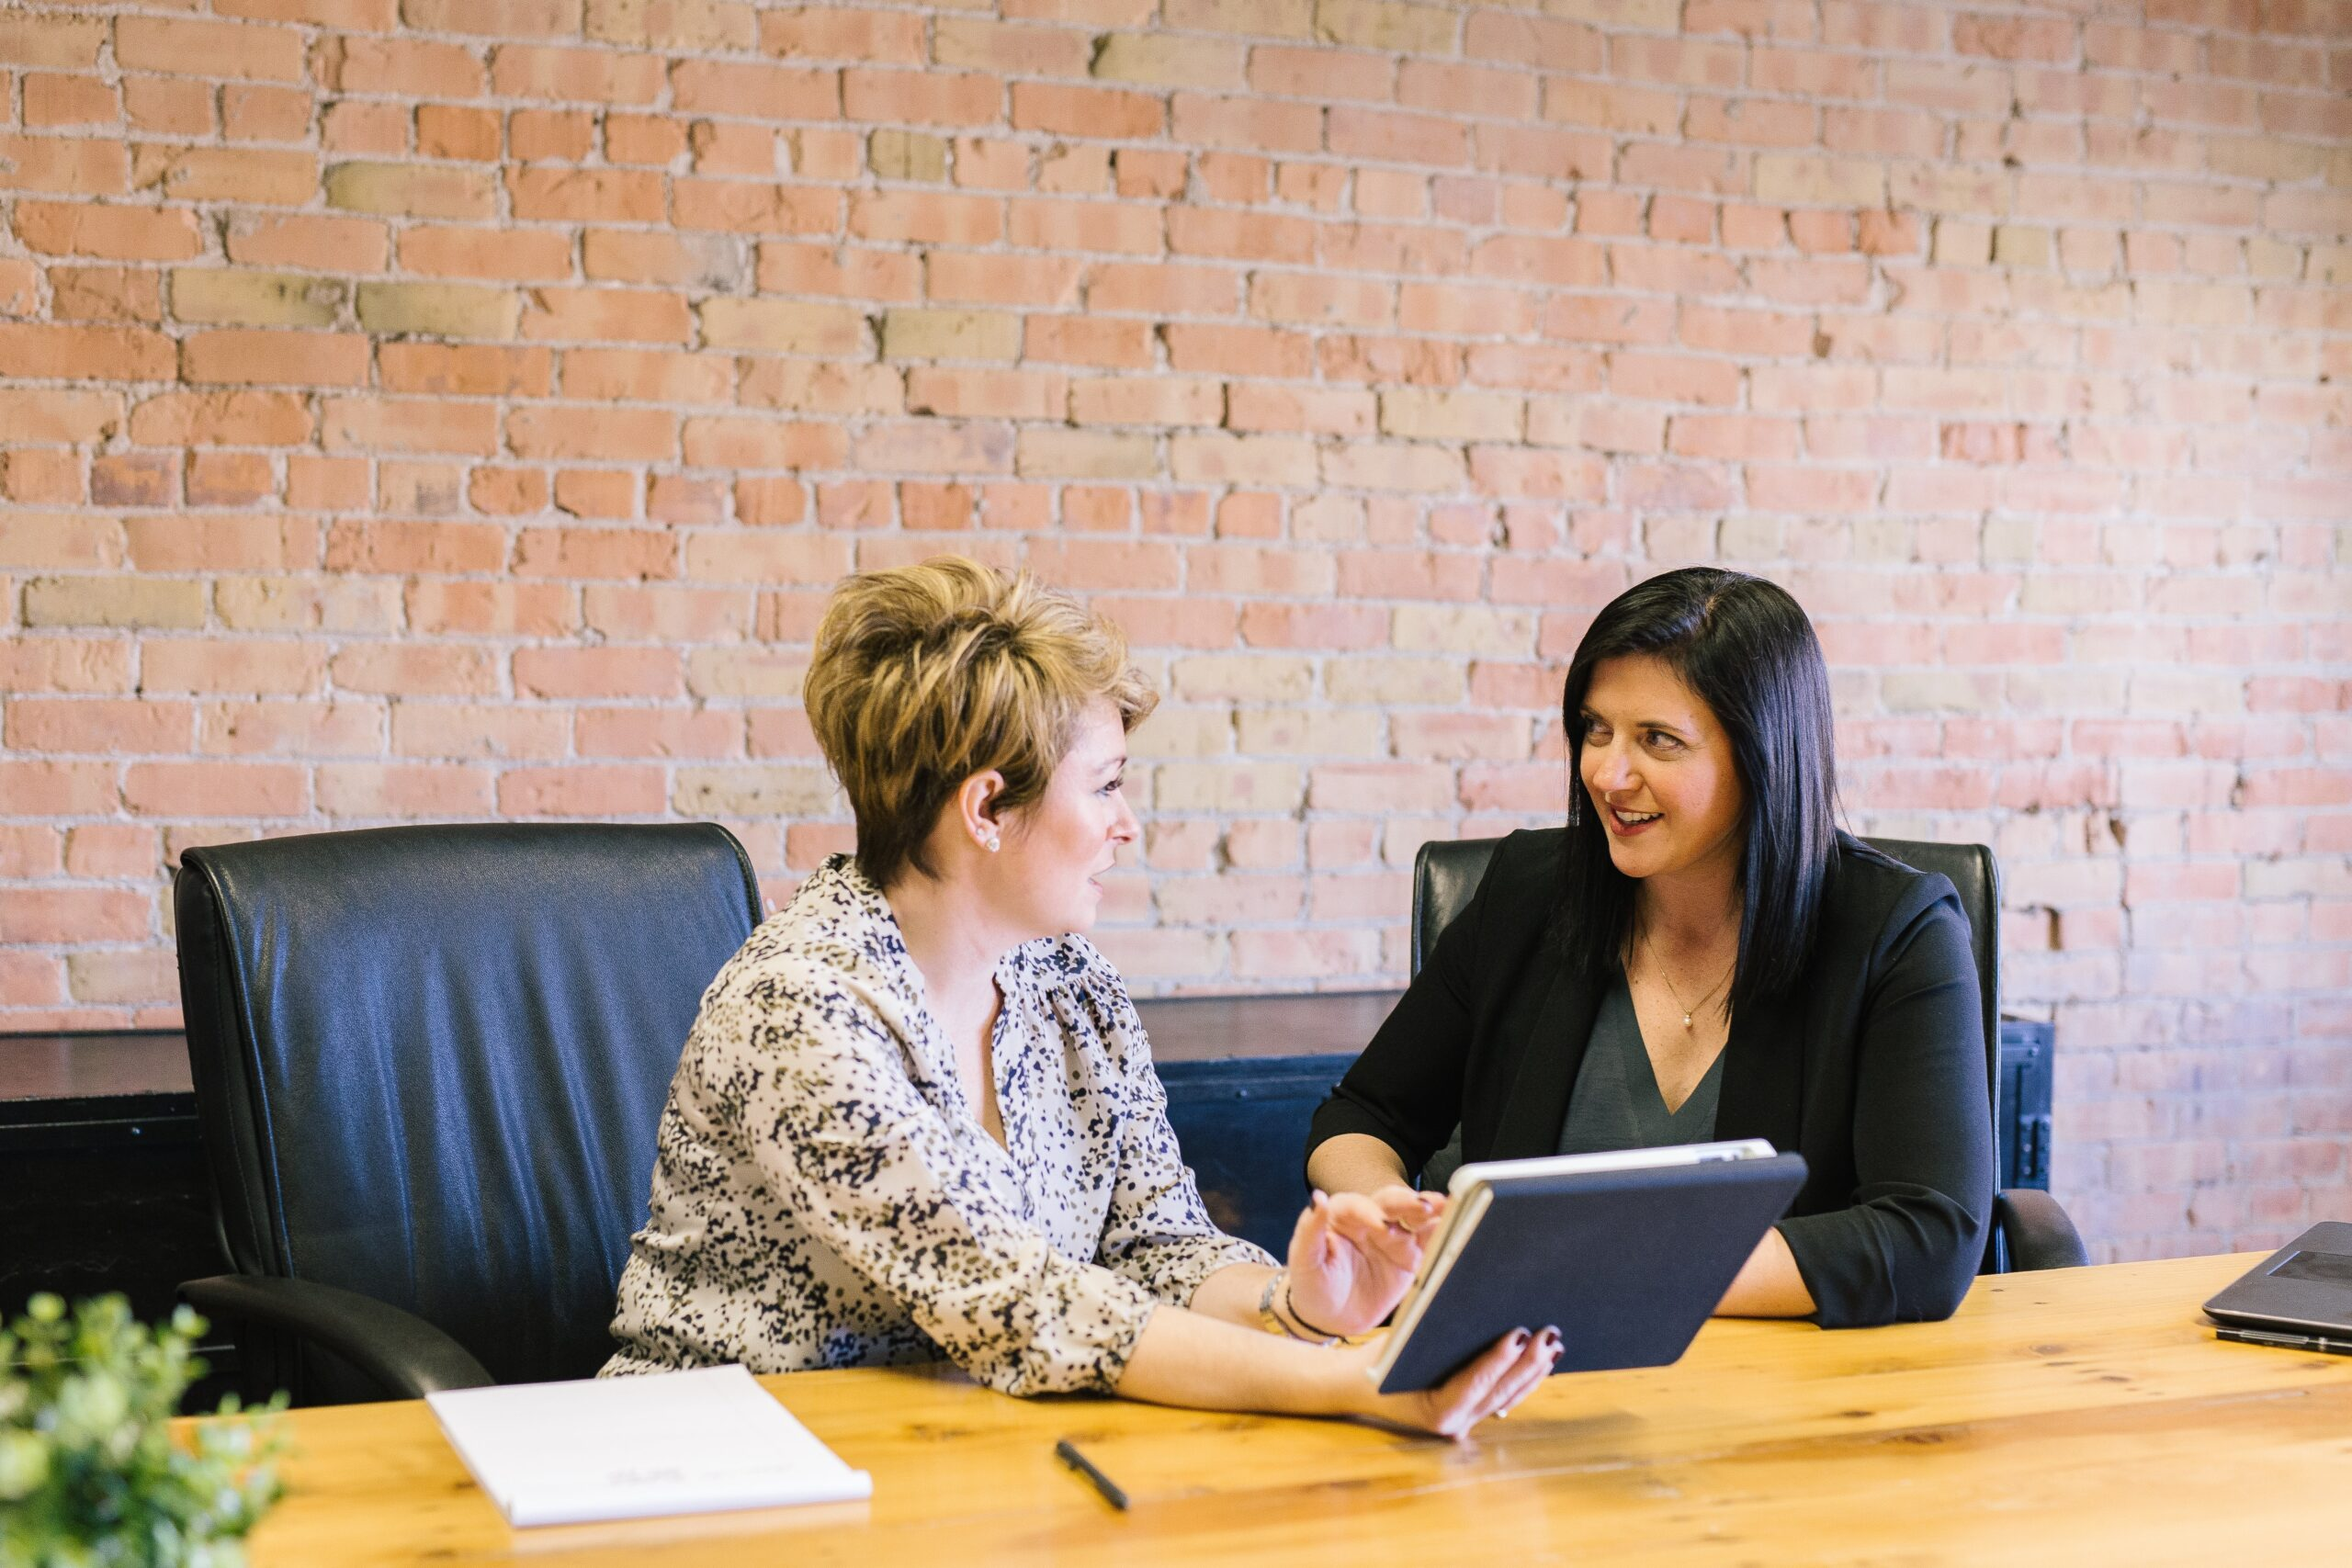 Outplacement Services Companies - 4 Tips for Getting the Most Out of Them (Frederickson Blog)